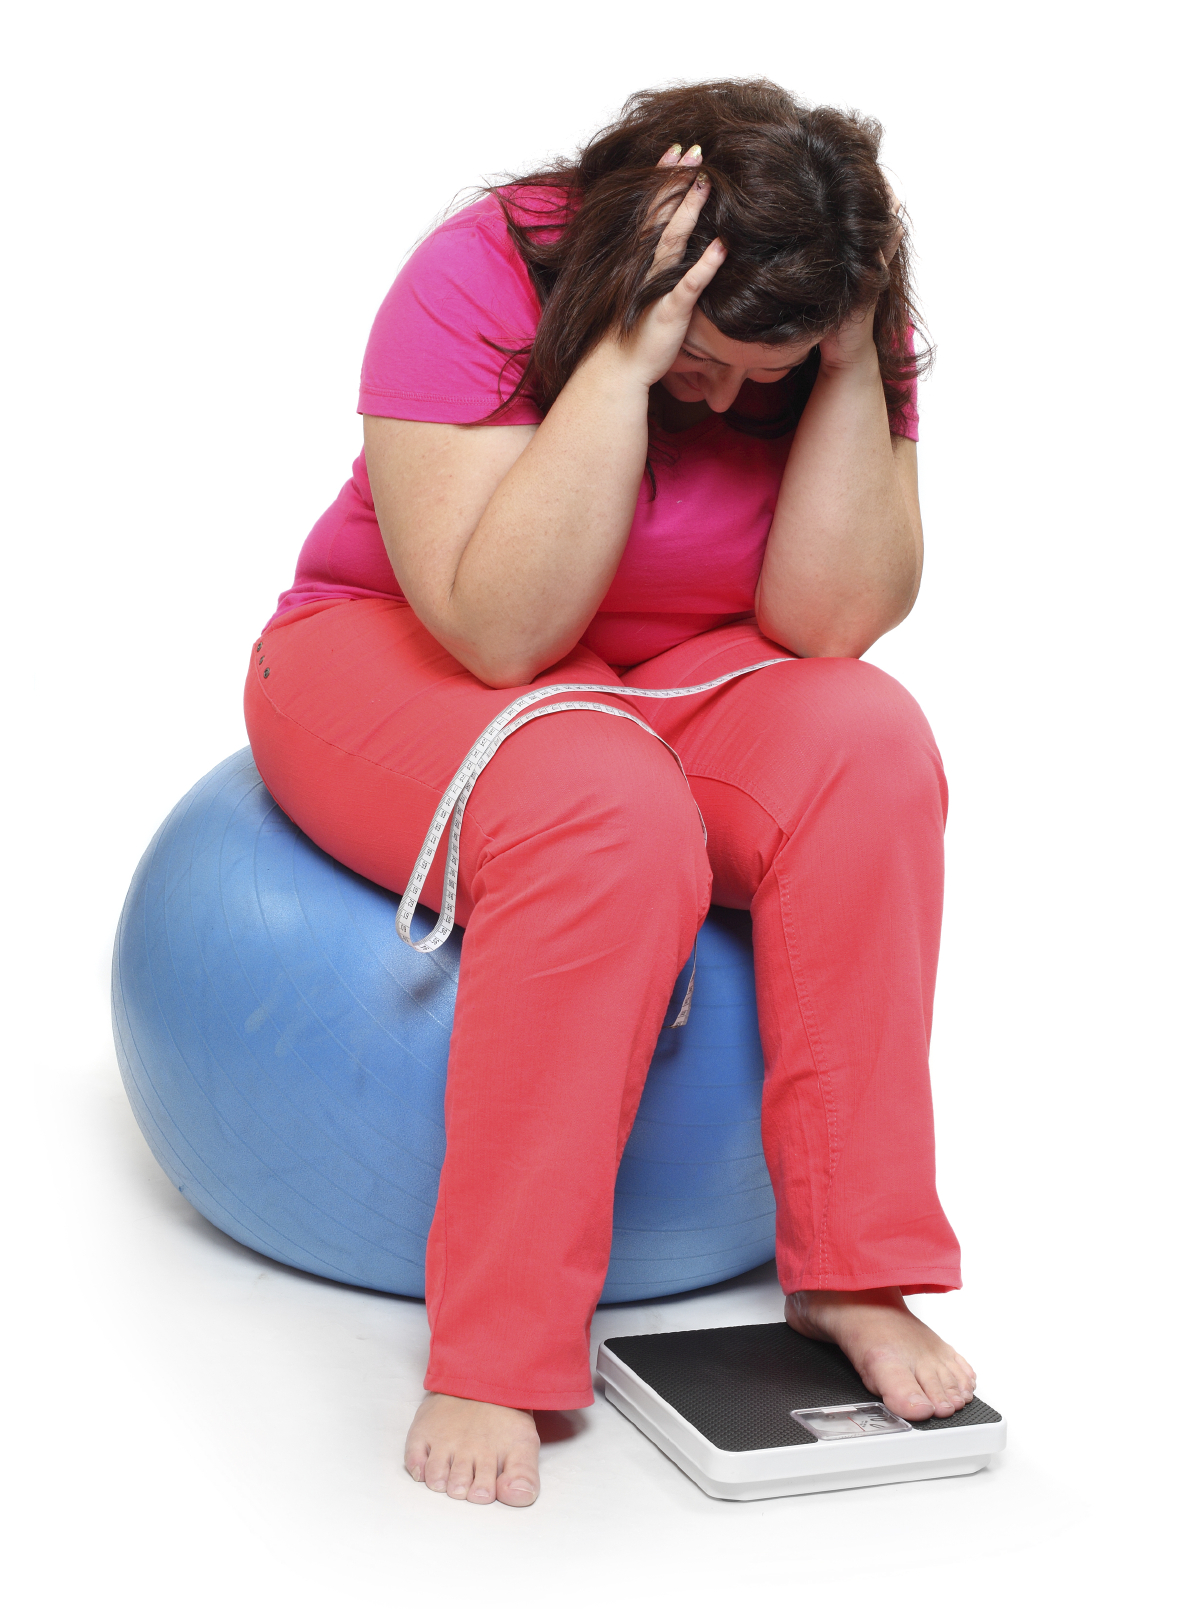 Frustrated overweight woman